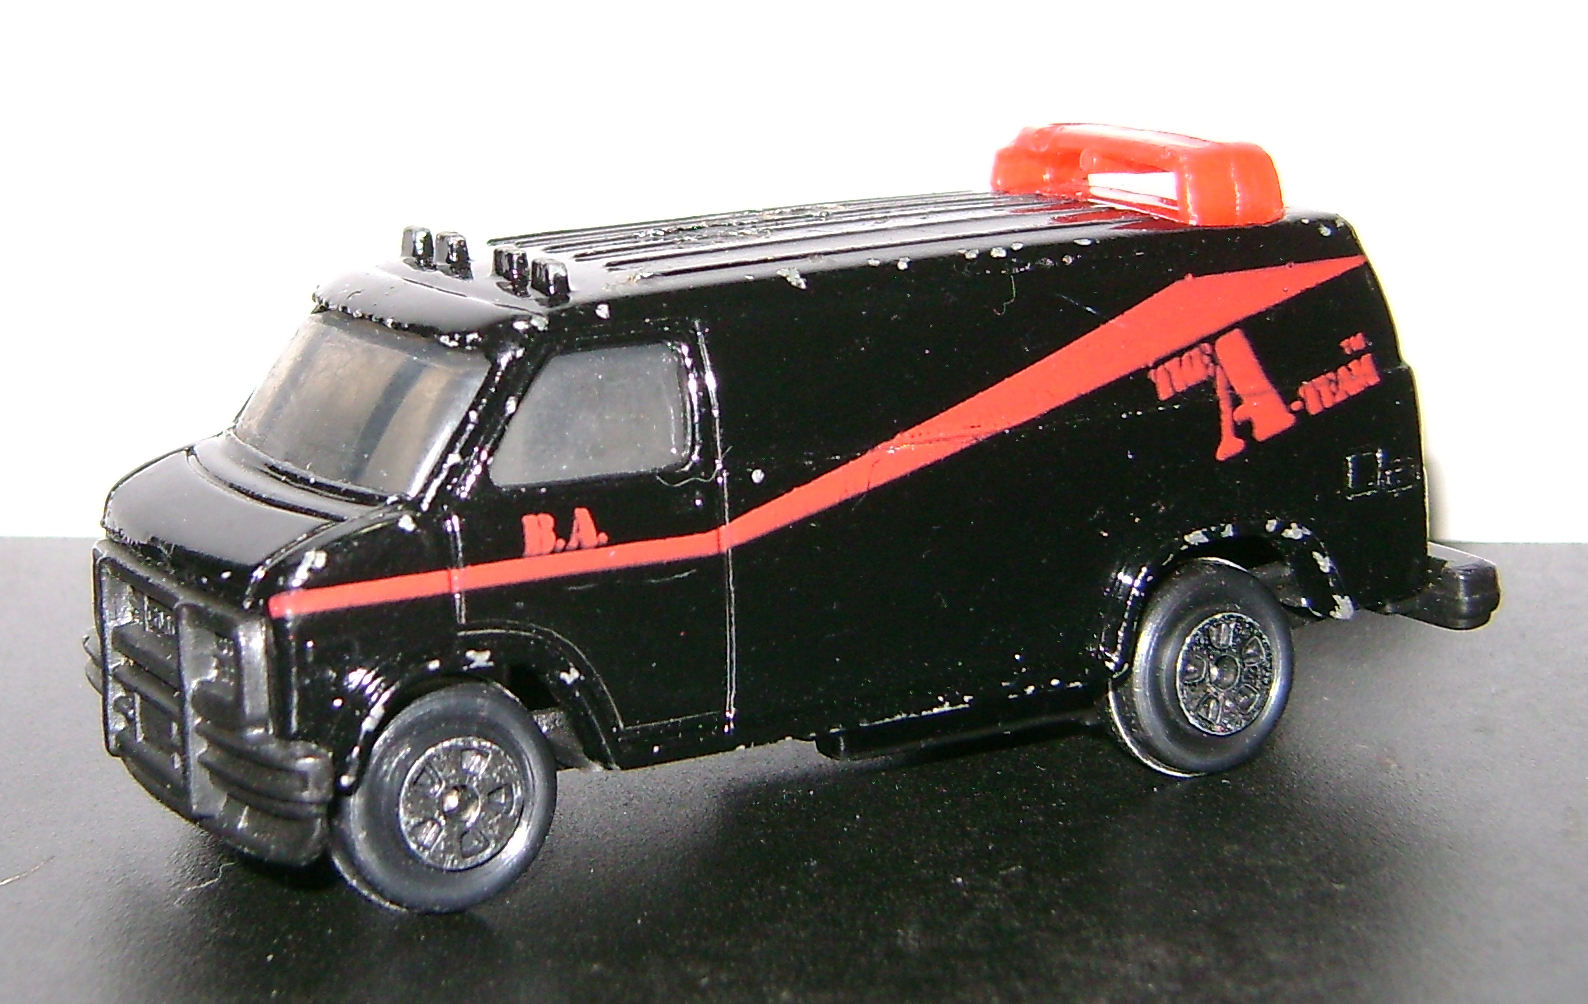 AVan 1 Vintage Toy Of The Month:  The A Team!